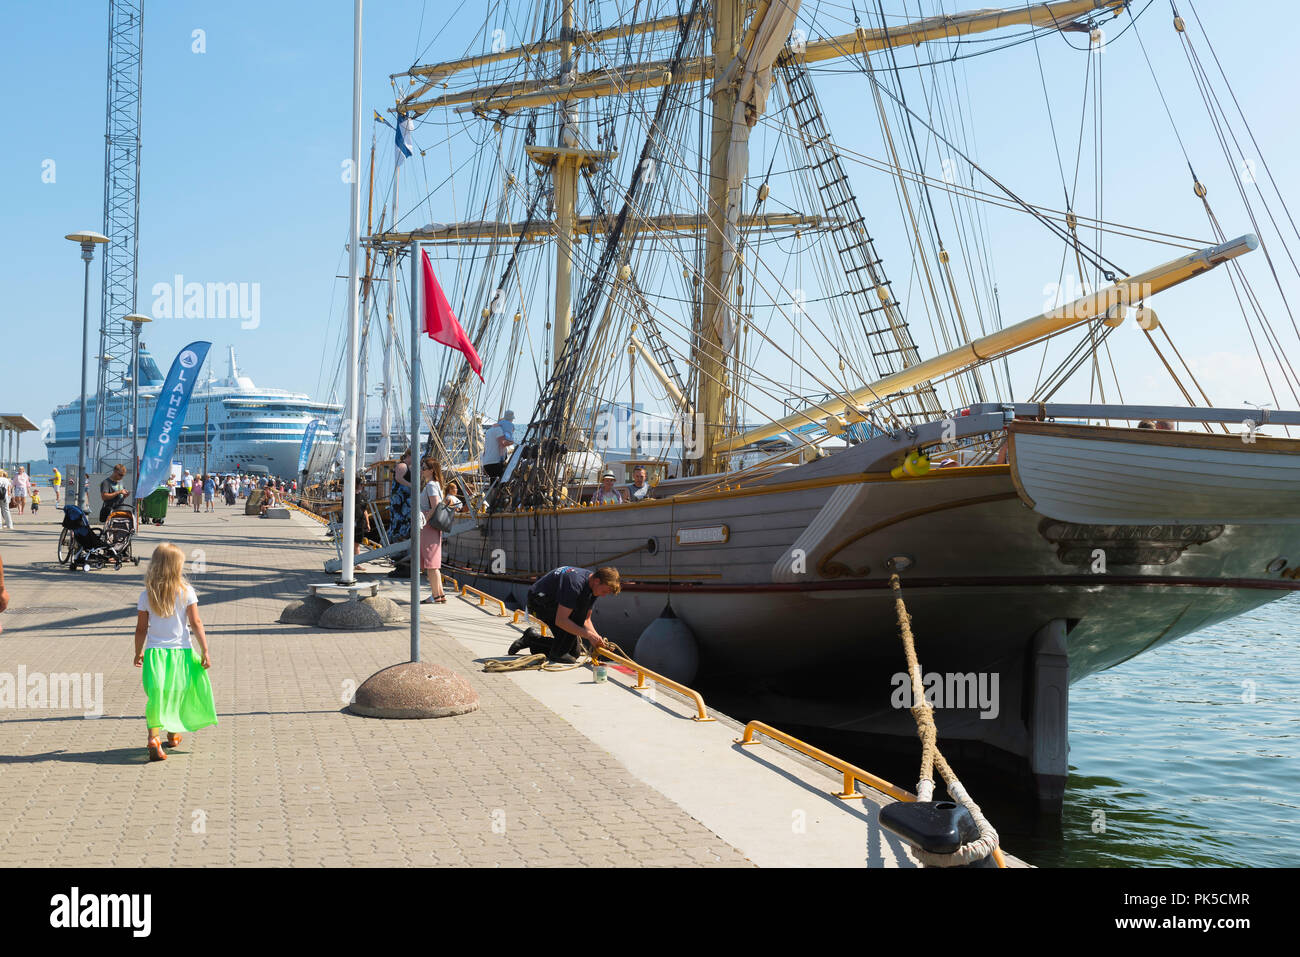 Child harbor ship, rear view of a small child in a green skirt walking beside a 19th Century sailing ship in Tallinn harbor on a summer day, Estonia. Stock Photo